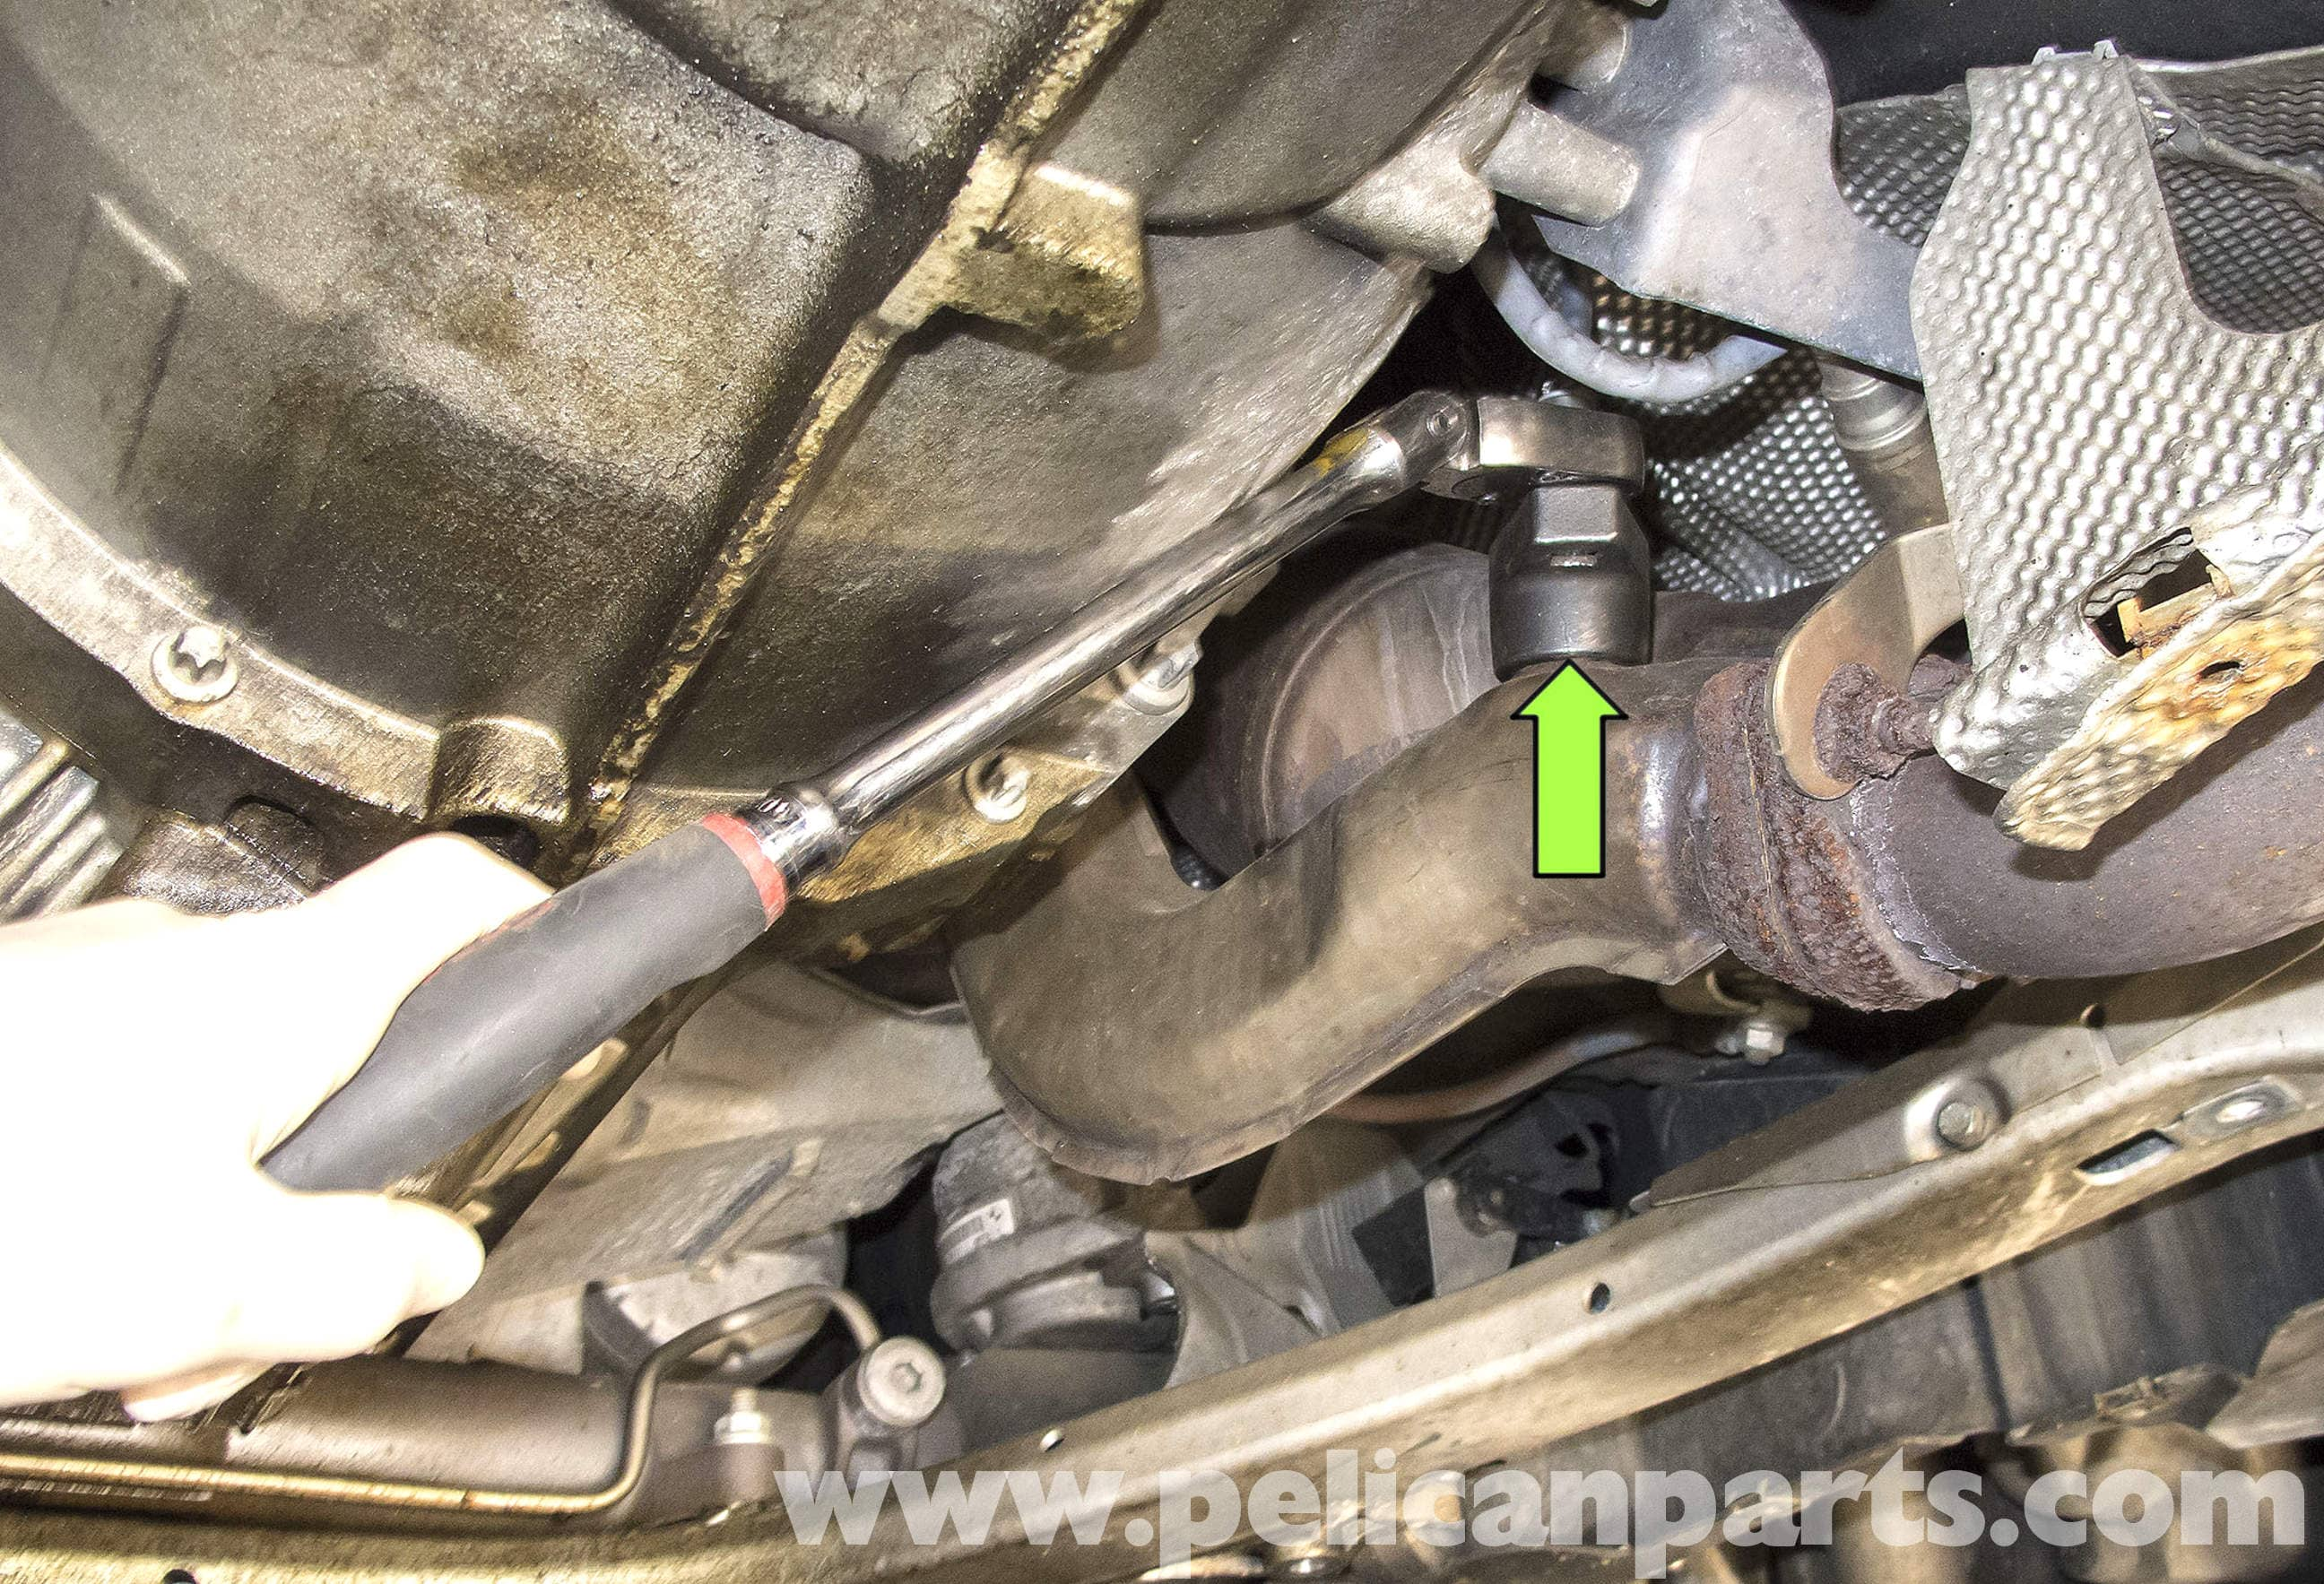 2004 Bmw 545i Engine Diagram as well 17 FUEL Camshaft Sensor Replacement also E36 Tranny Fluid Auto as well Sensor Location On Honda Cr V Camshaft Position together with Bmw 545i E60 Engine Diagrams. on bmw n62 wiring diagram